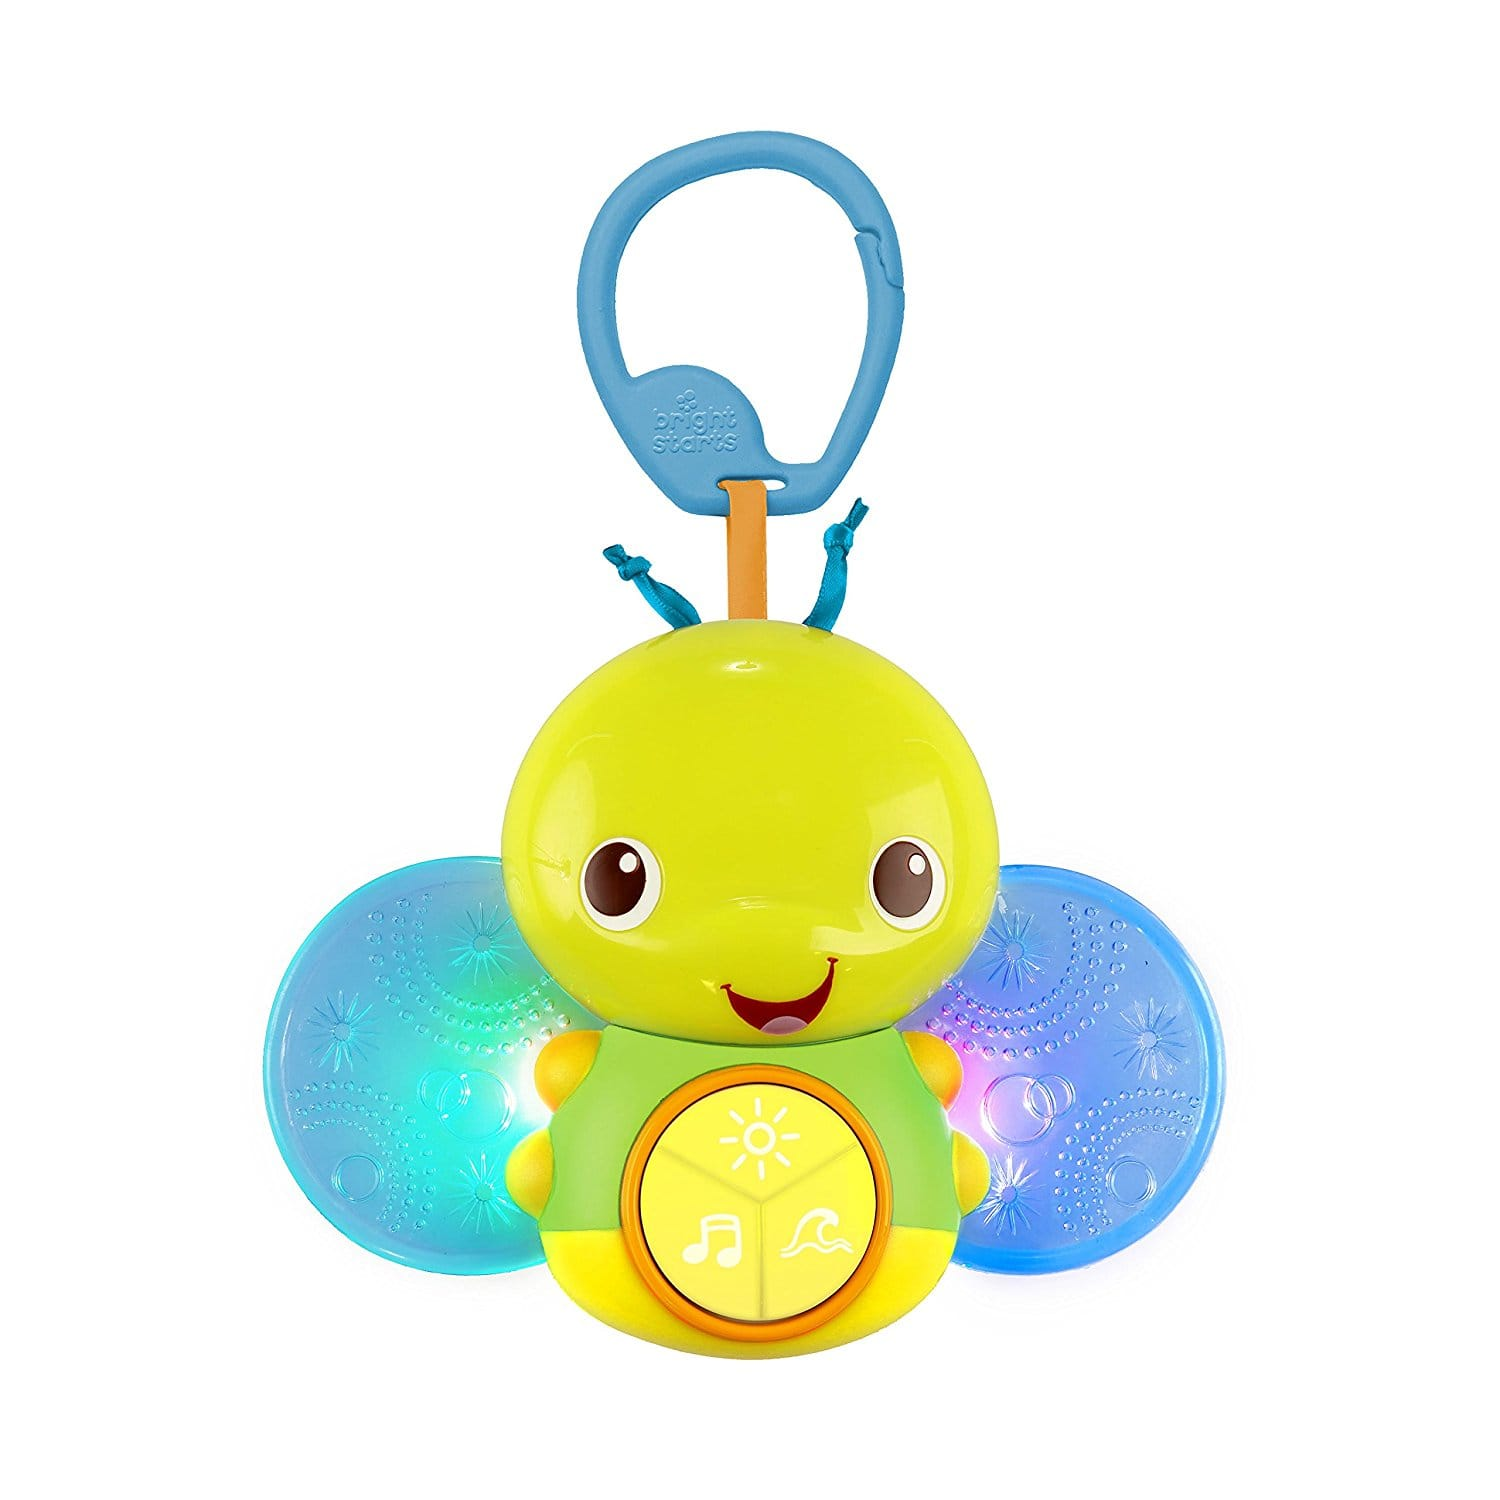 Add-on: Bright Starts Beaming Buggie Take-Along Toy $3.63